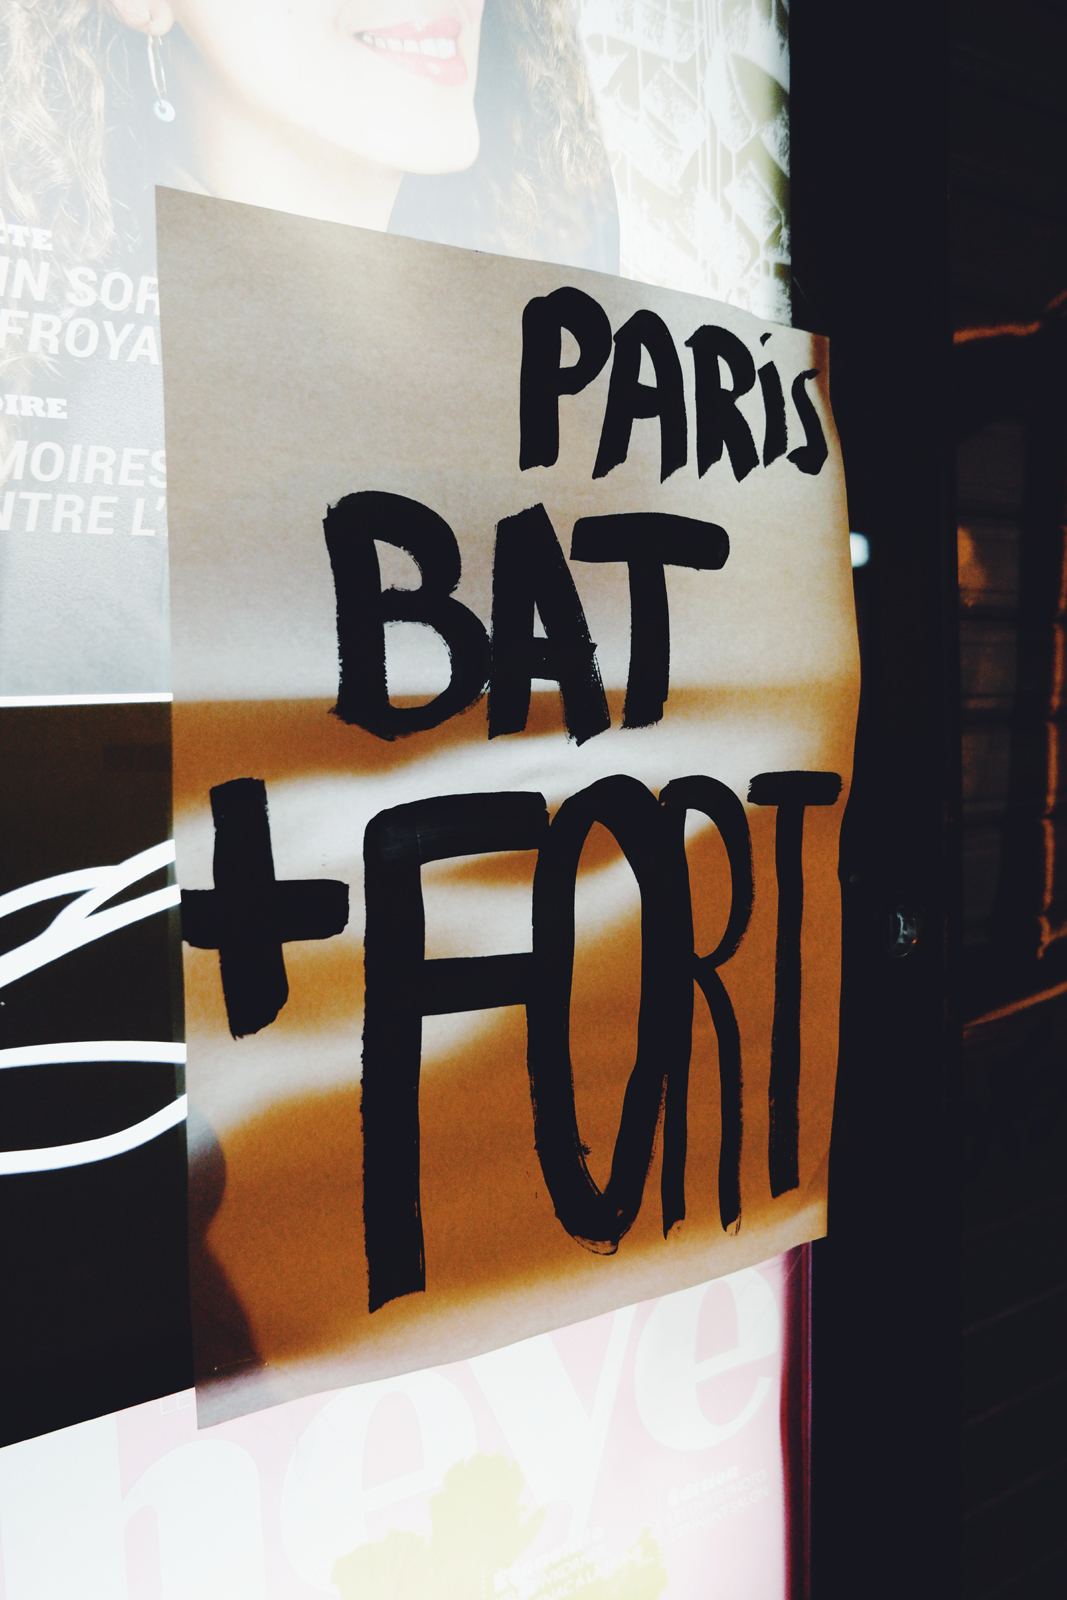 Paris bat plus fort message affiché sur kiosque à journaux après les attentats de paris le 13 novembre 2015 Pray for Paris Je suis Paris photo united states of paris blog